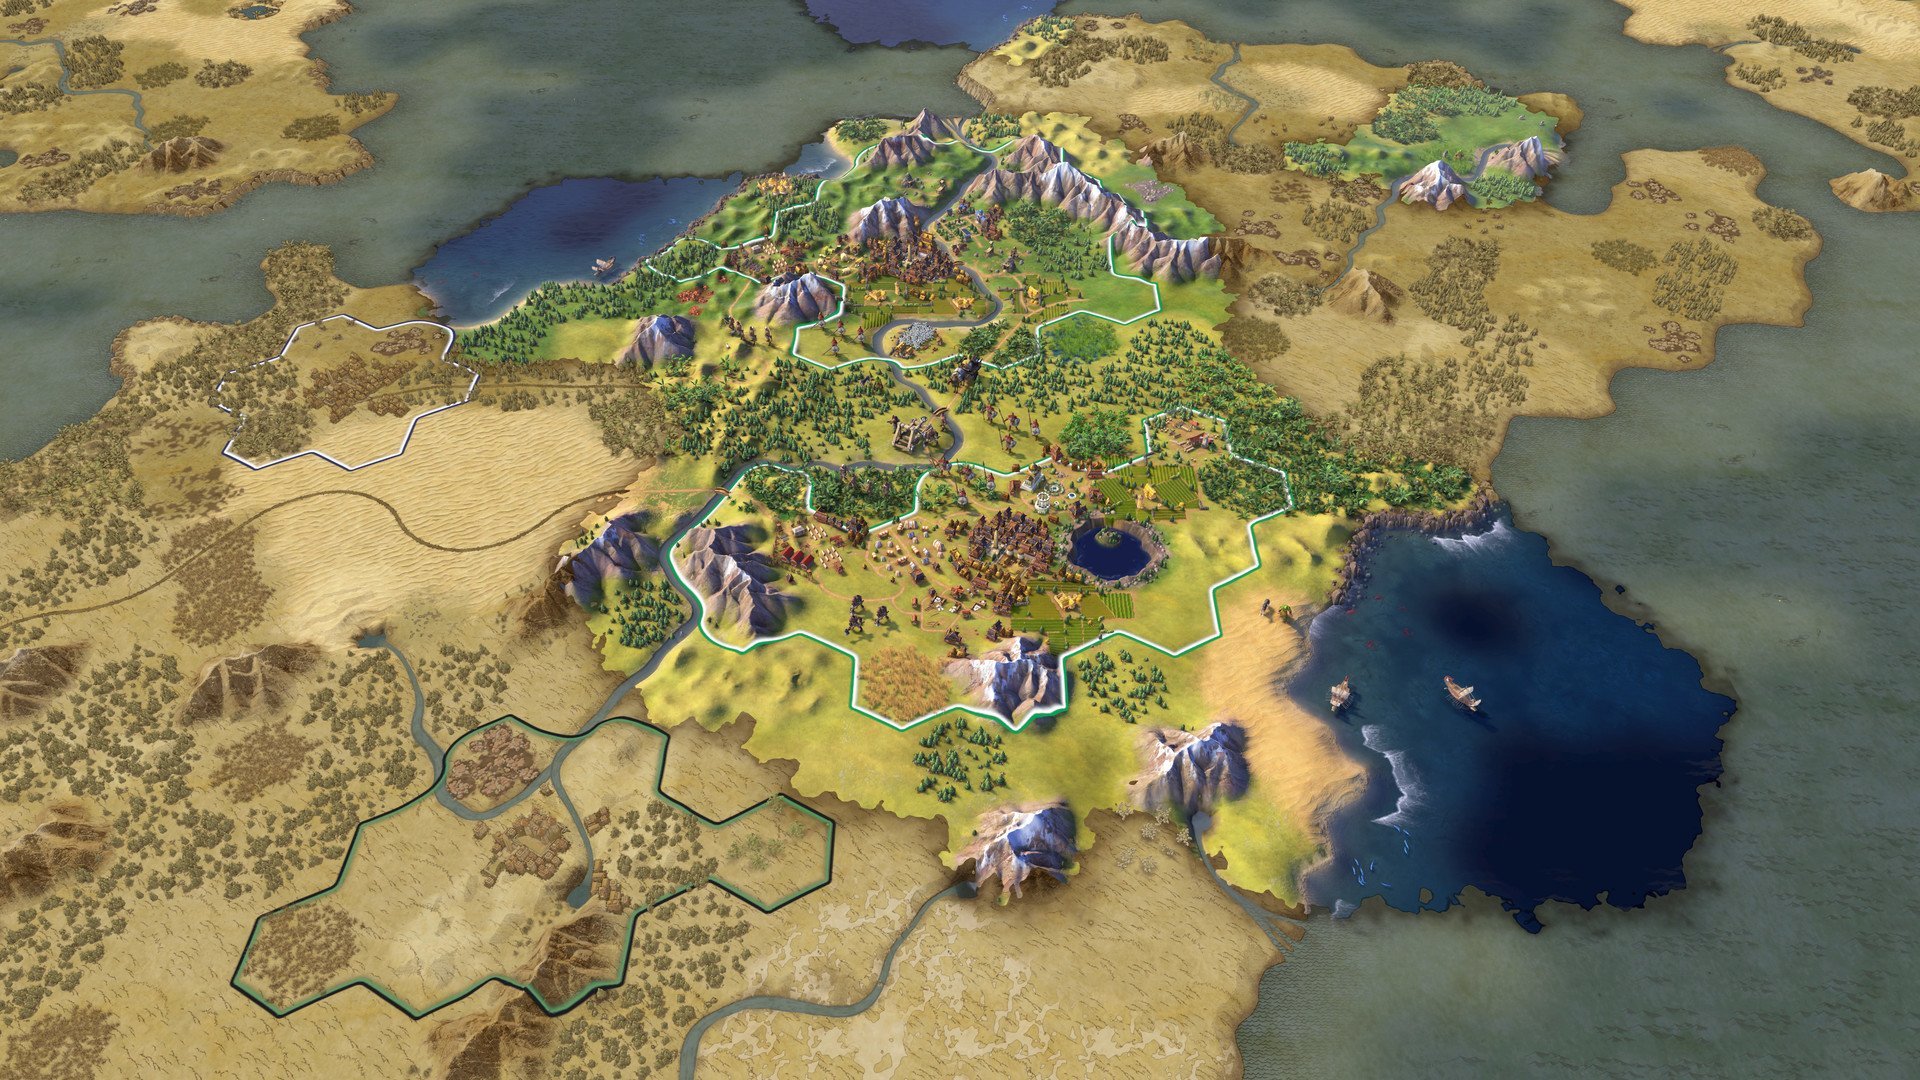 Civ 6 Governors Rise and Fall